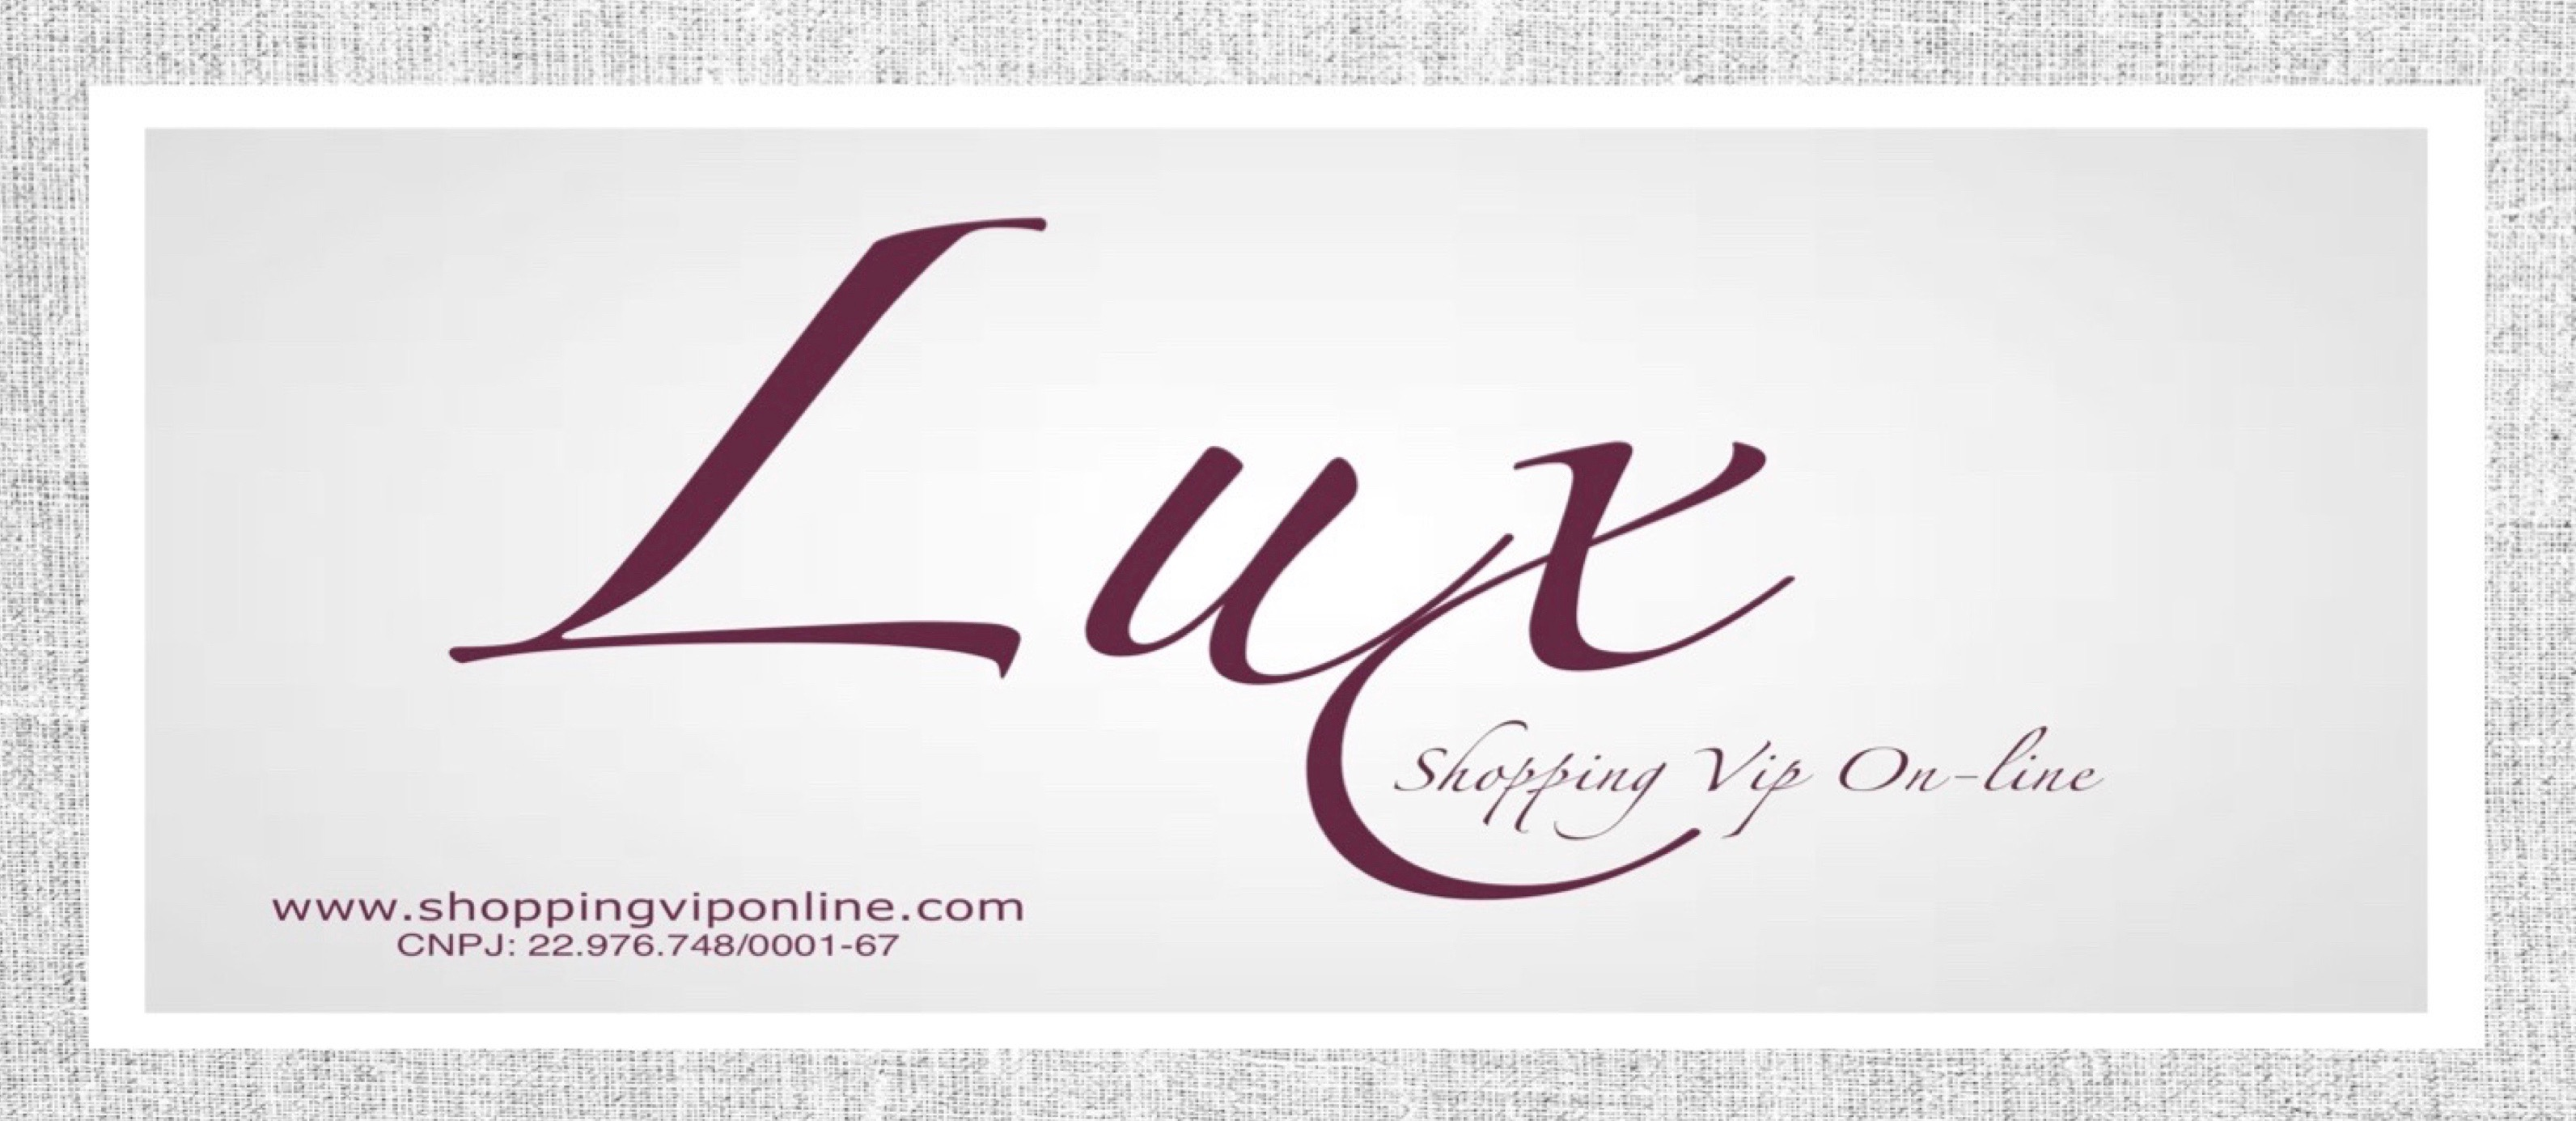 LUX Shopping Vip On-line